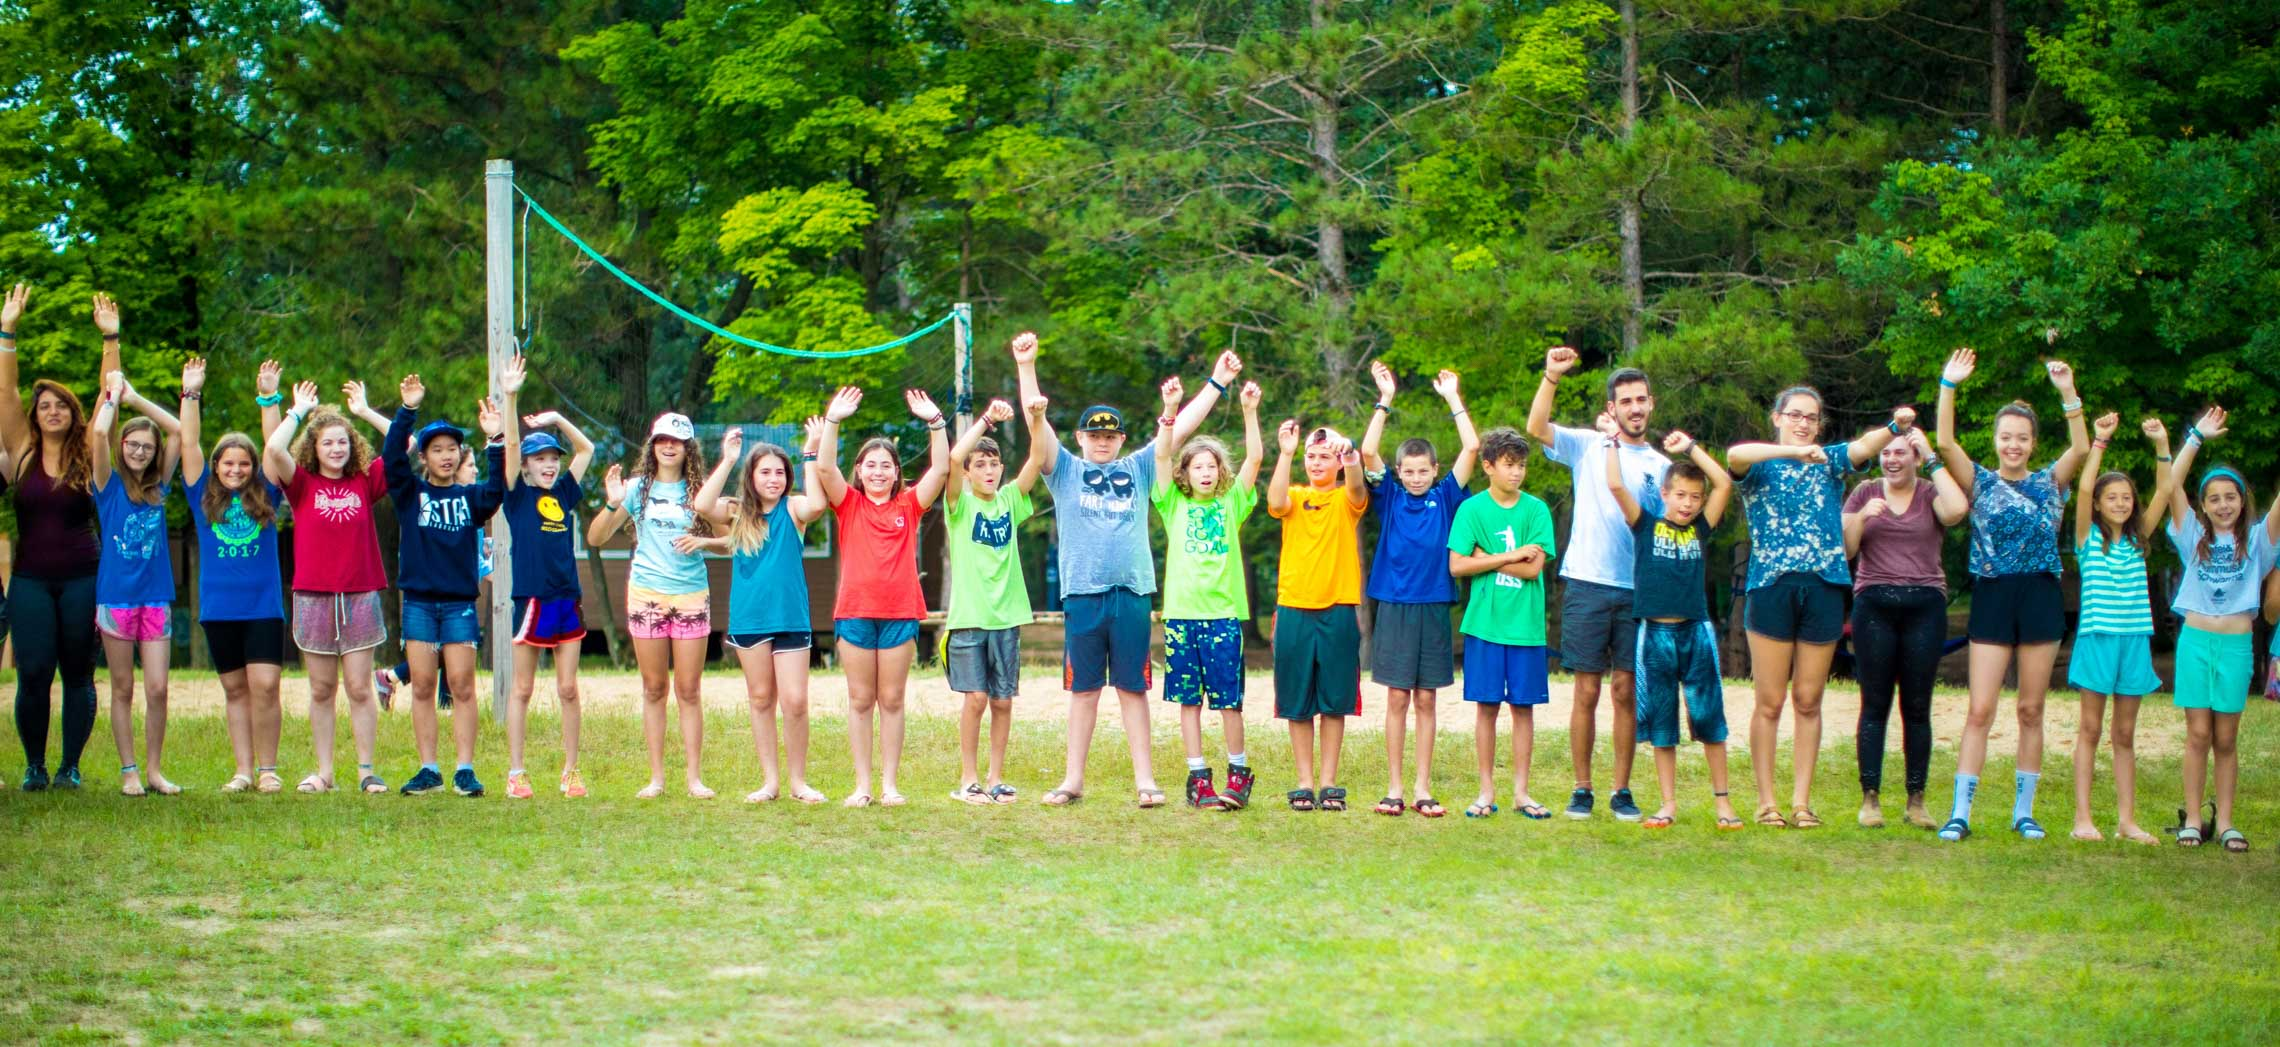 Campers with arms in air